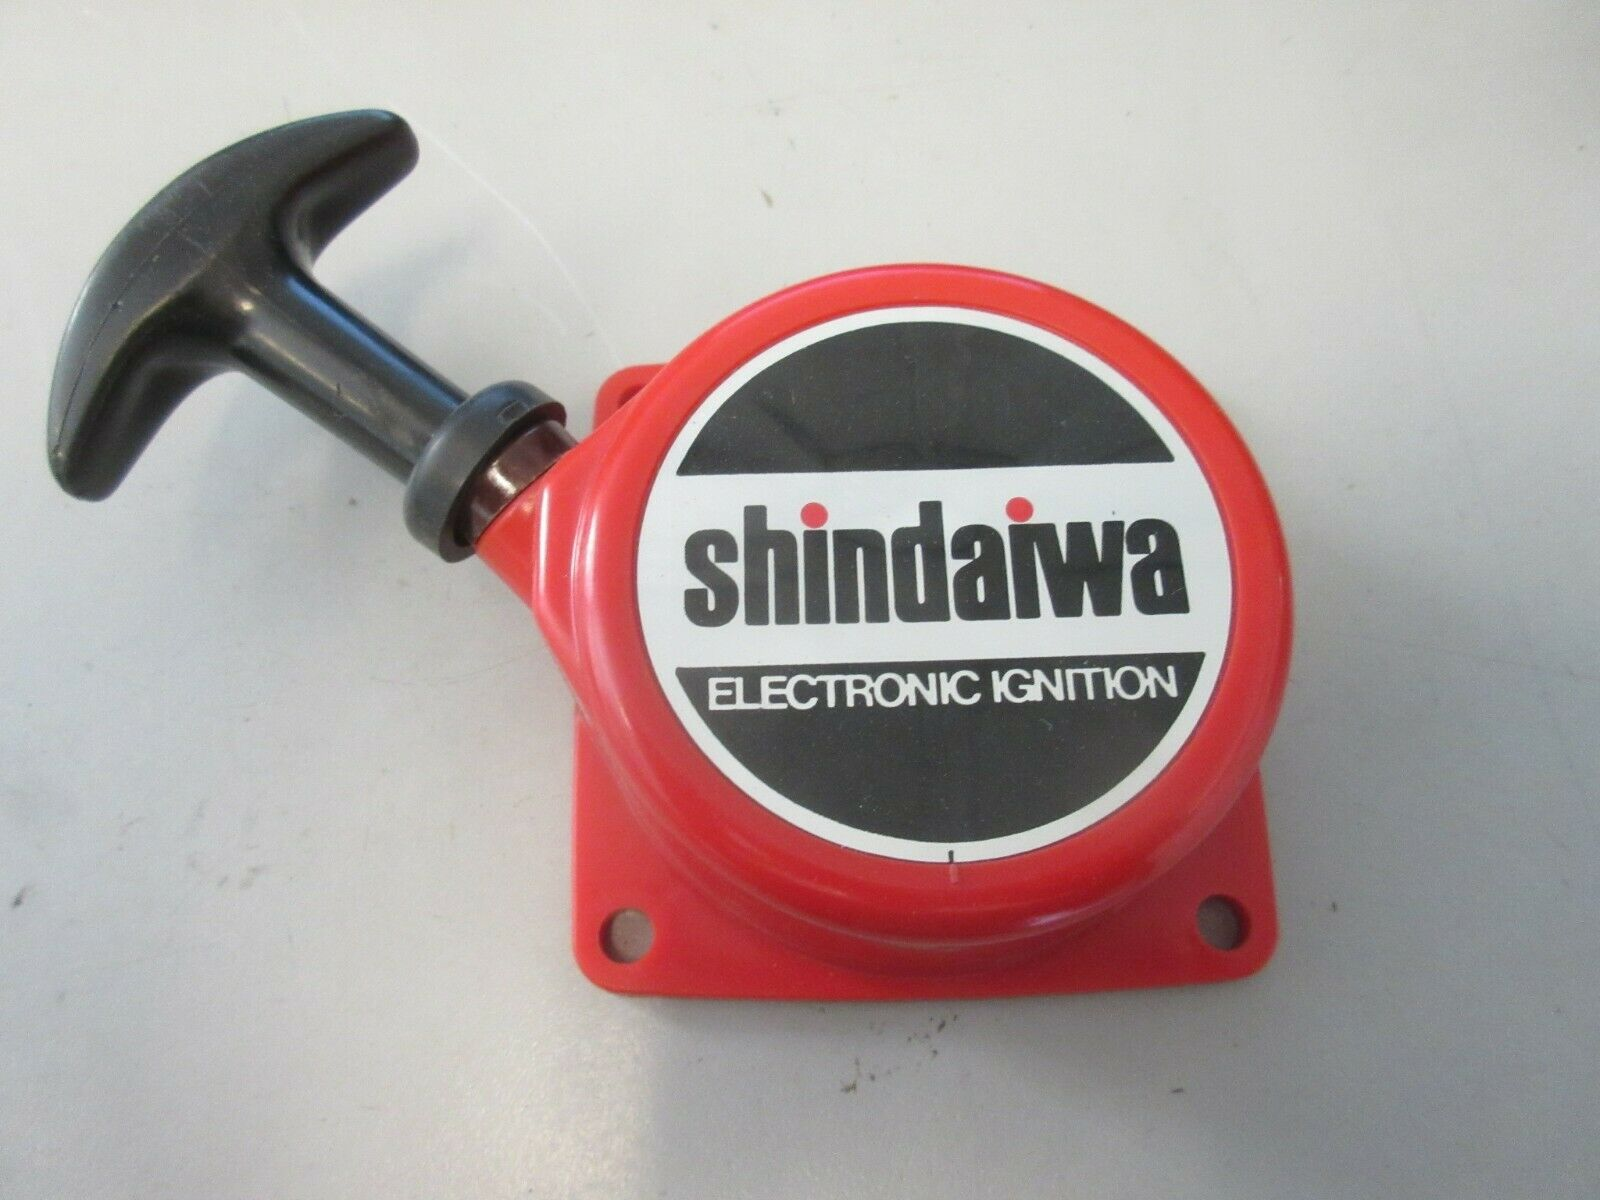 Genuine Shindaiwa Part Recoil Starter Assembly 27 T27 70102-75 A051001700 AMC3D - $31.95